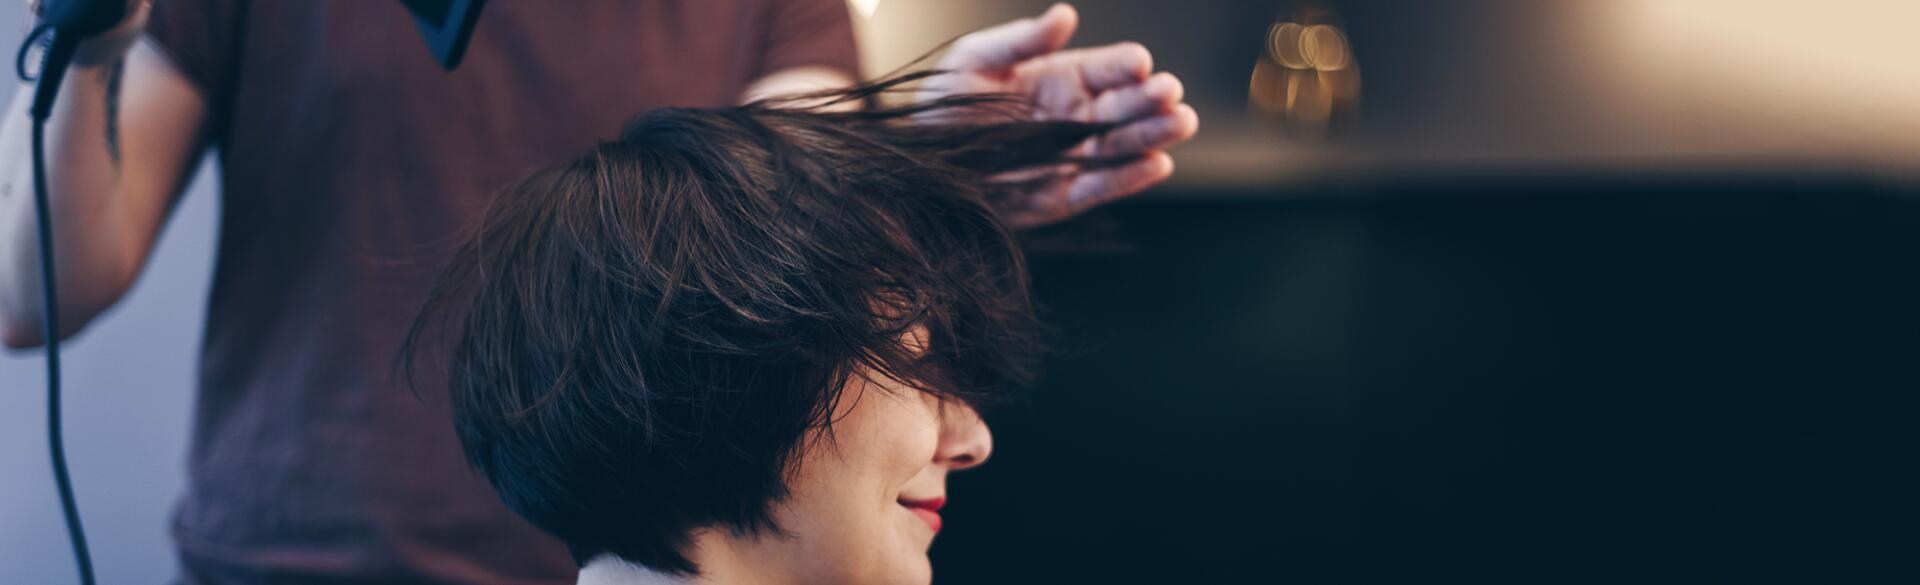 Breaking_up_with_my_Hairdresser_woman_getting_a_haircut_offset_801394_1540